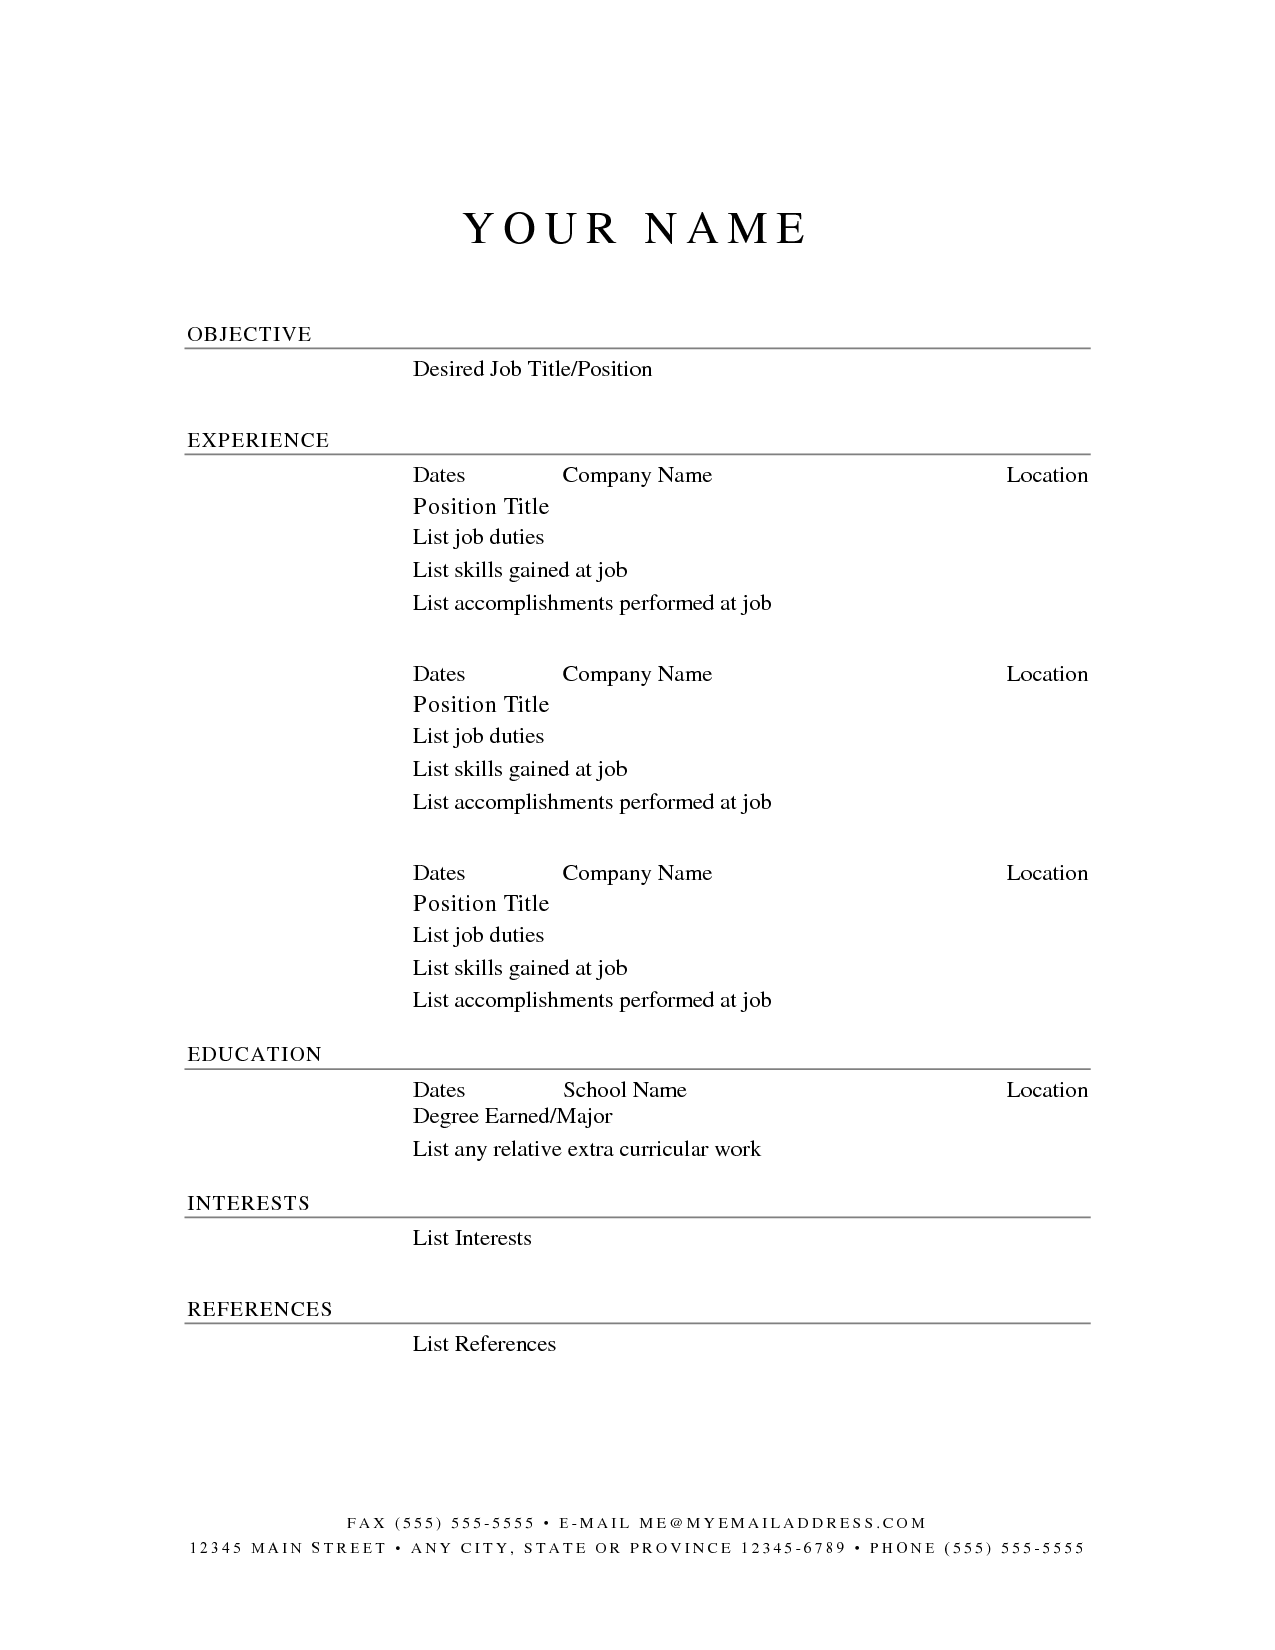 Printable resume templates free printable resume template printable resume templates free printable resume template yelopaper Images